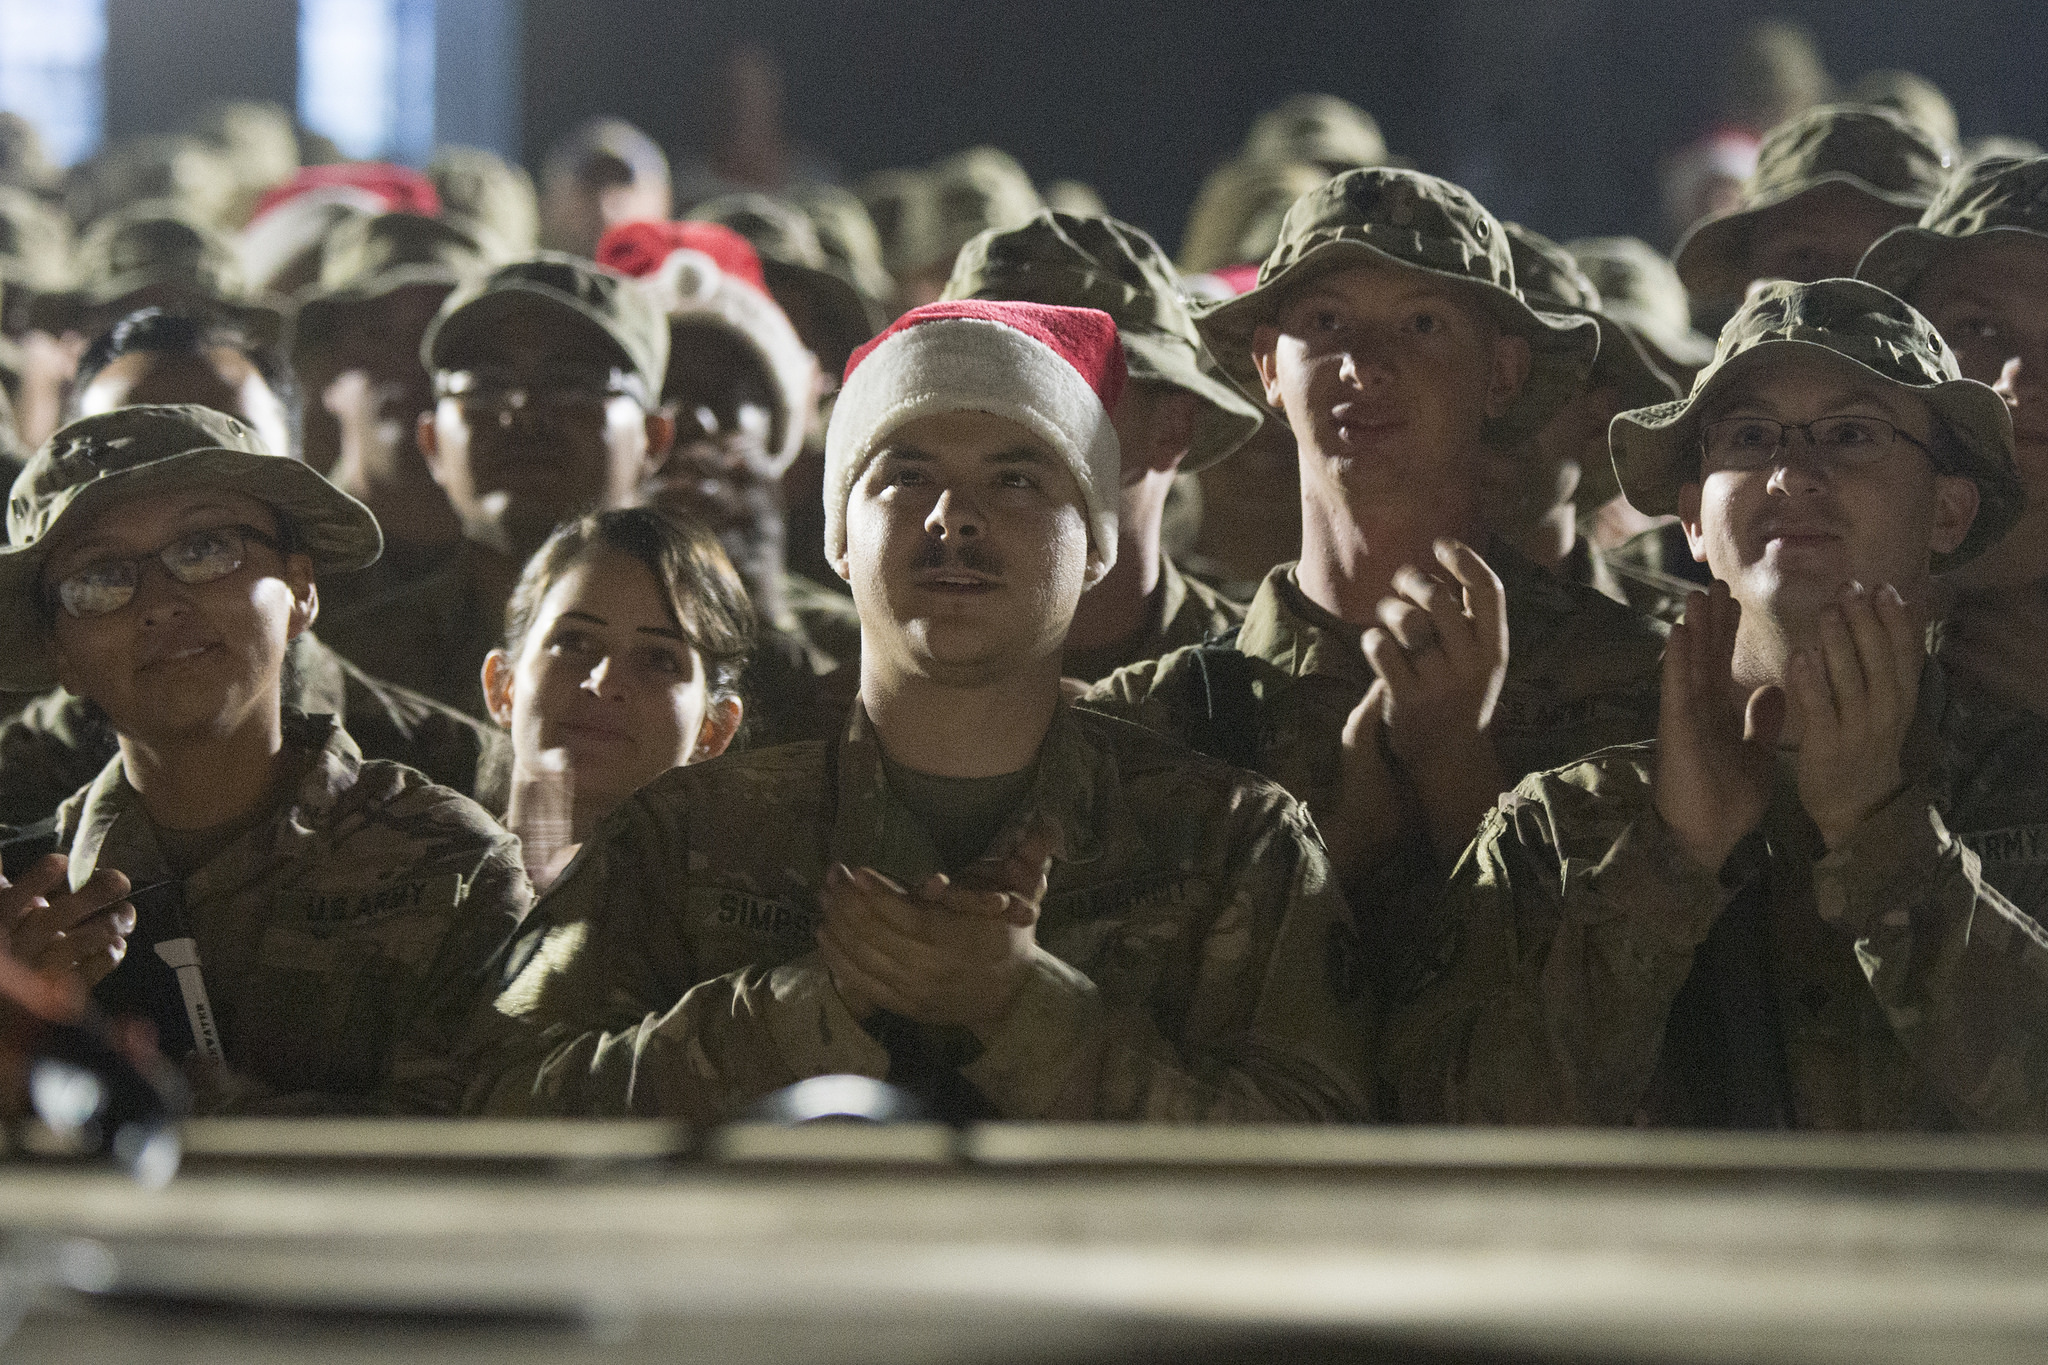 Soldiers from the 3rd and 4th Brigade 10th Mountain Division watch the USO Holiday Tour at Qayyarah West. (Navy Petty Officer 1st Class Dominique A. Pineiro/Dept. of Defense)